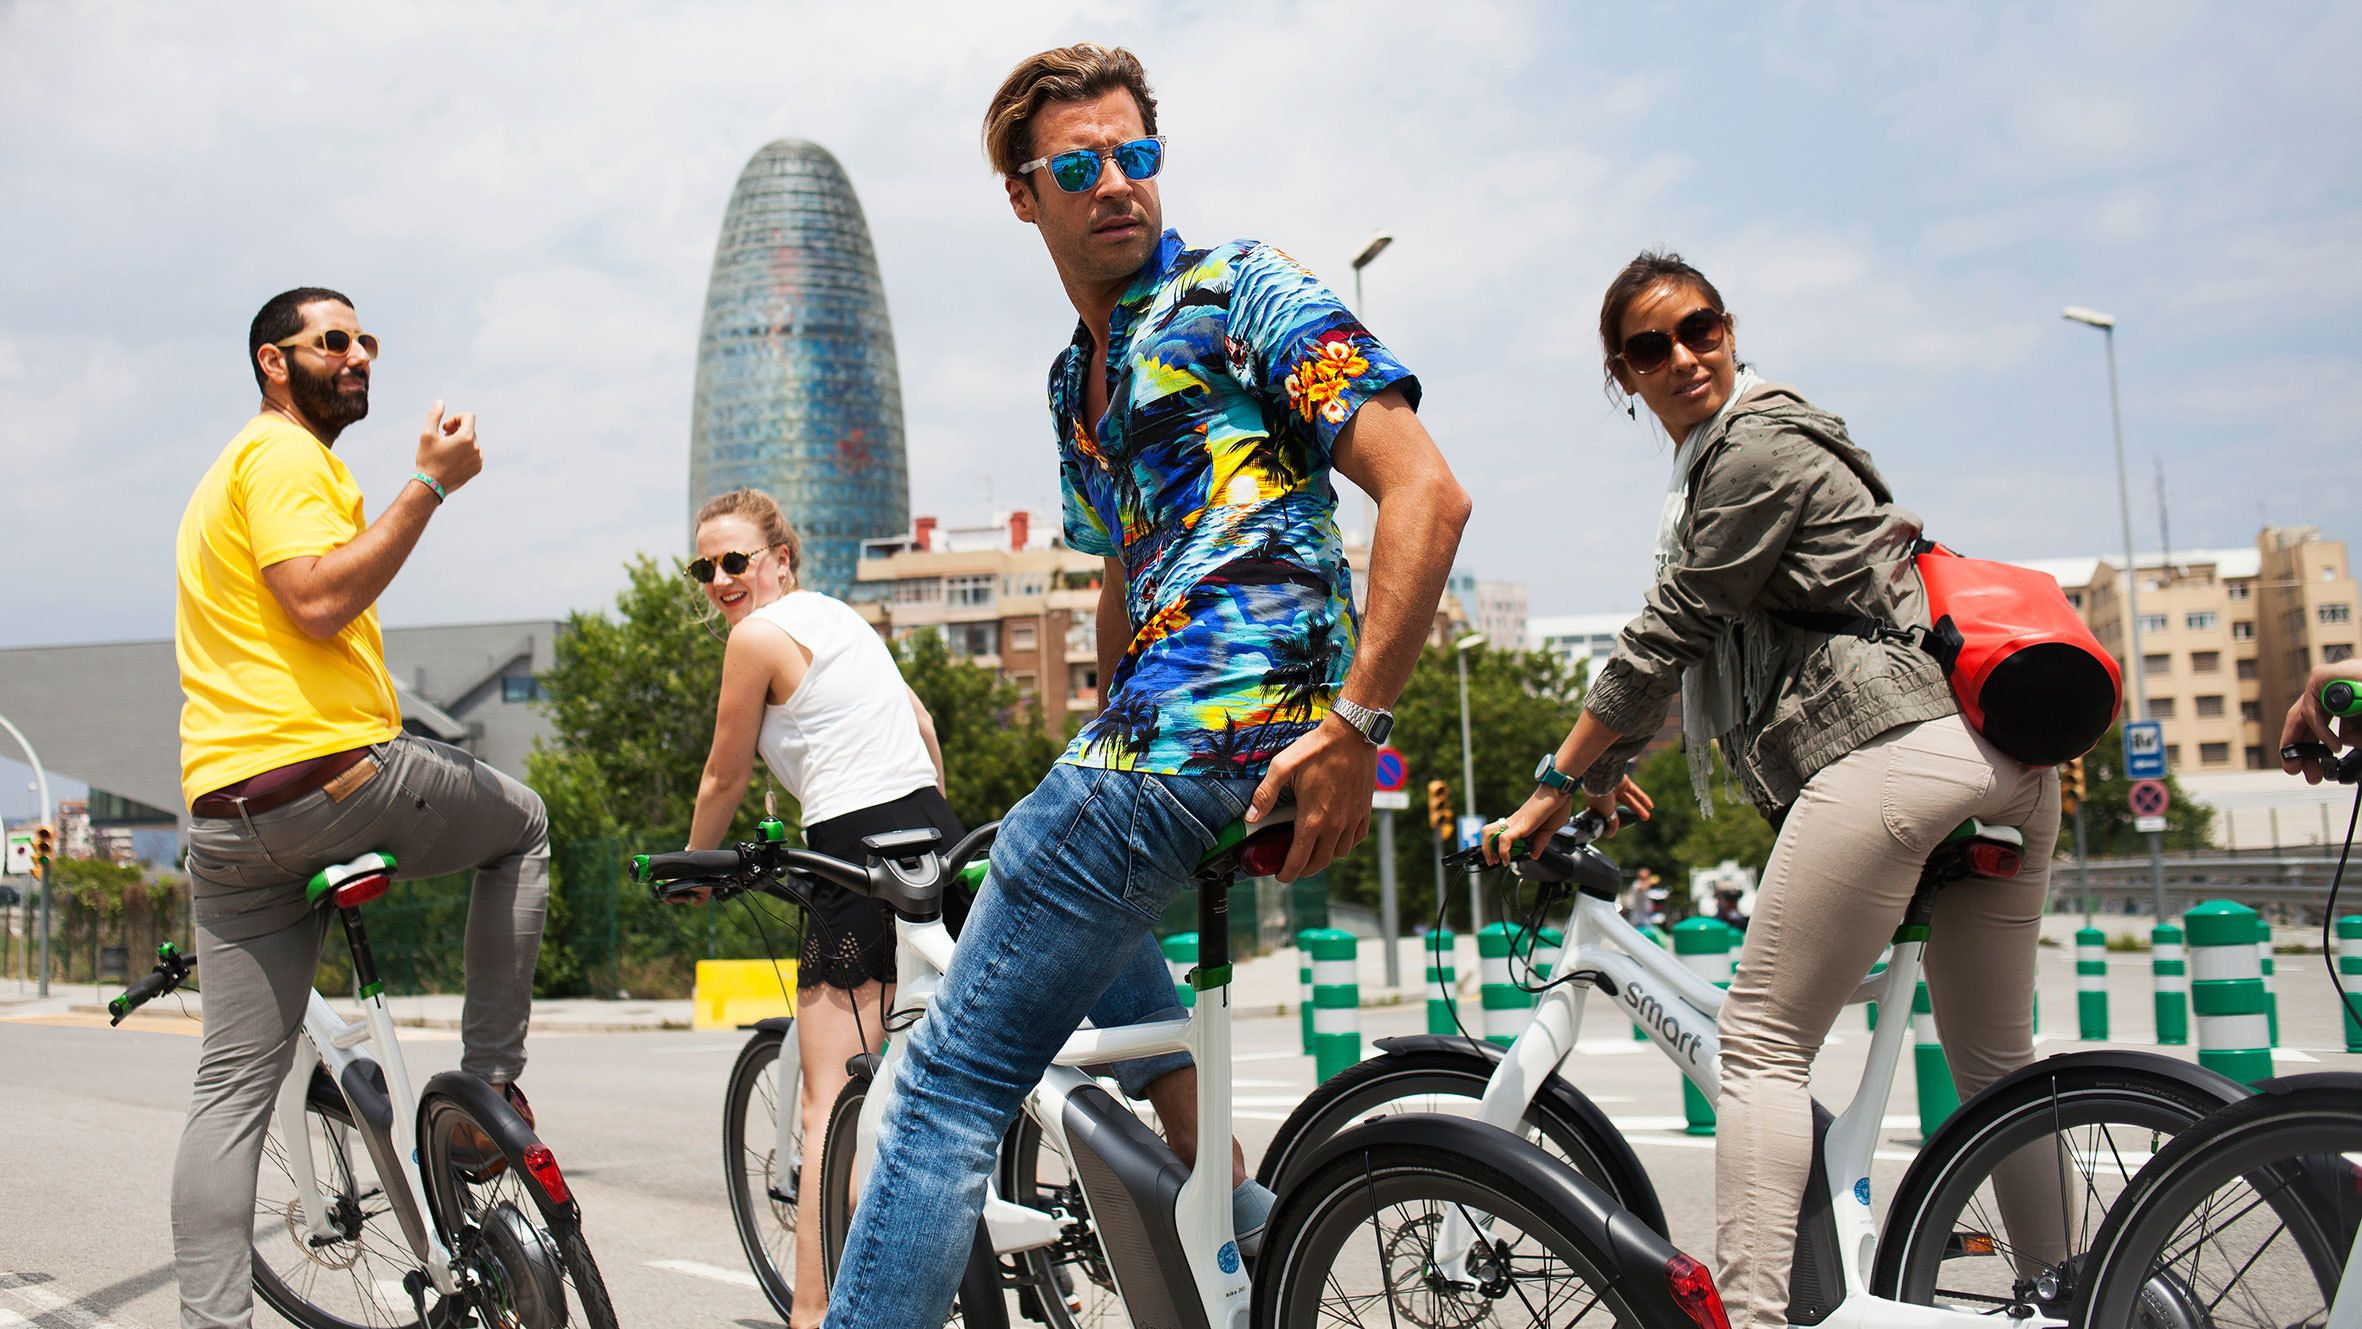 Group on ebikes with the Agbar Tower in the background in Barcelona